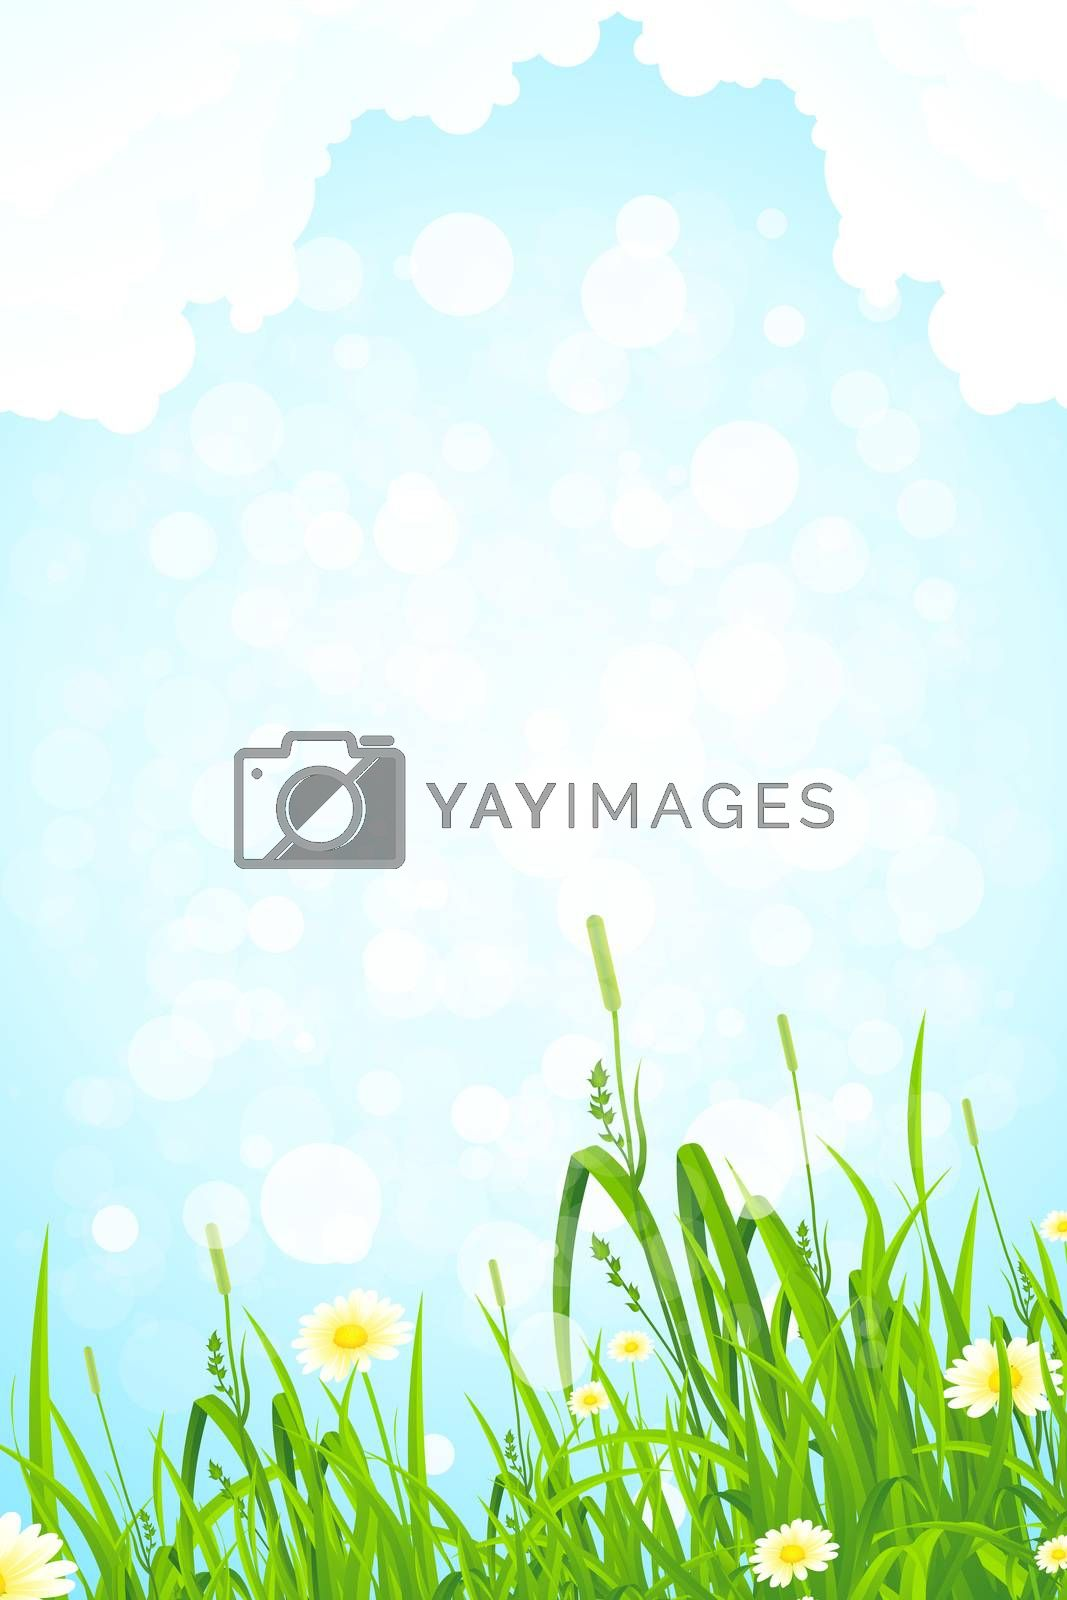 Background with Grass and Sky by WaD